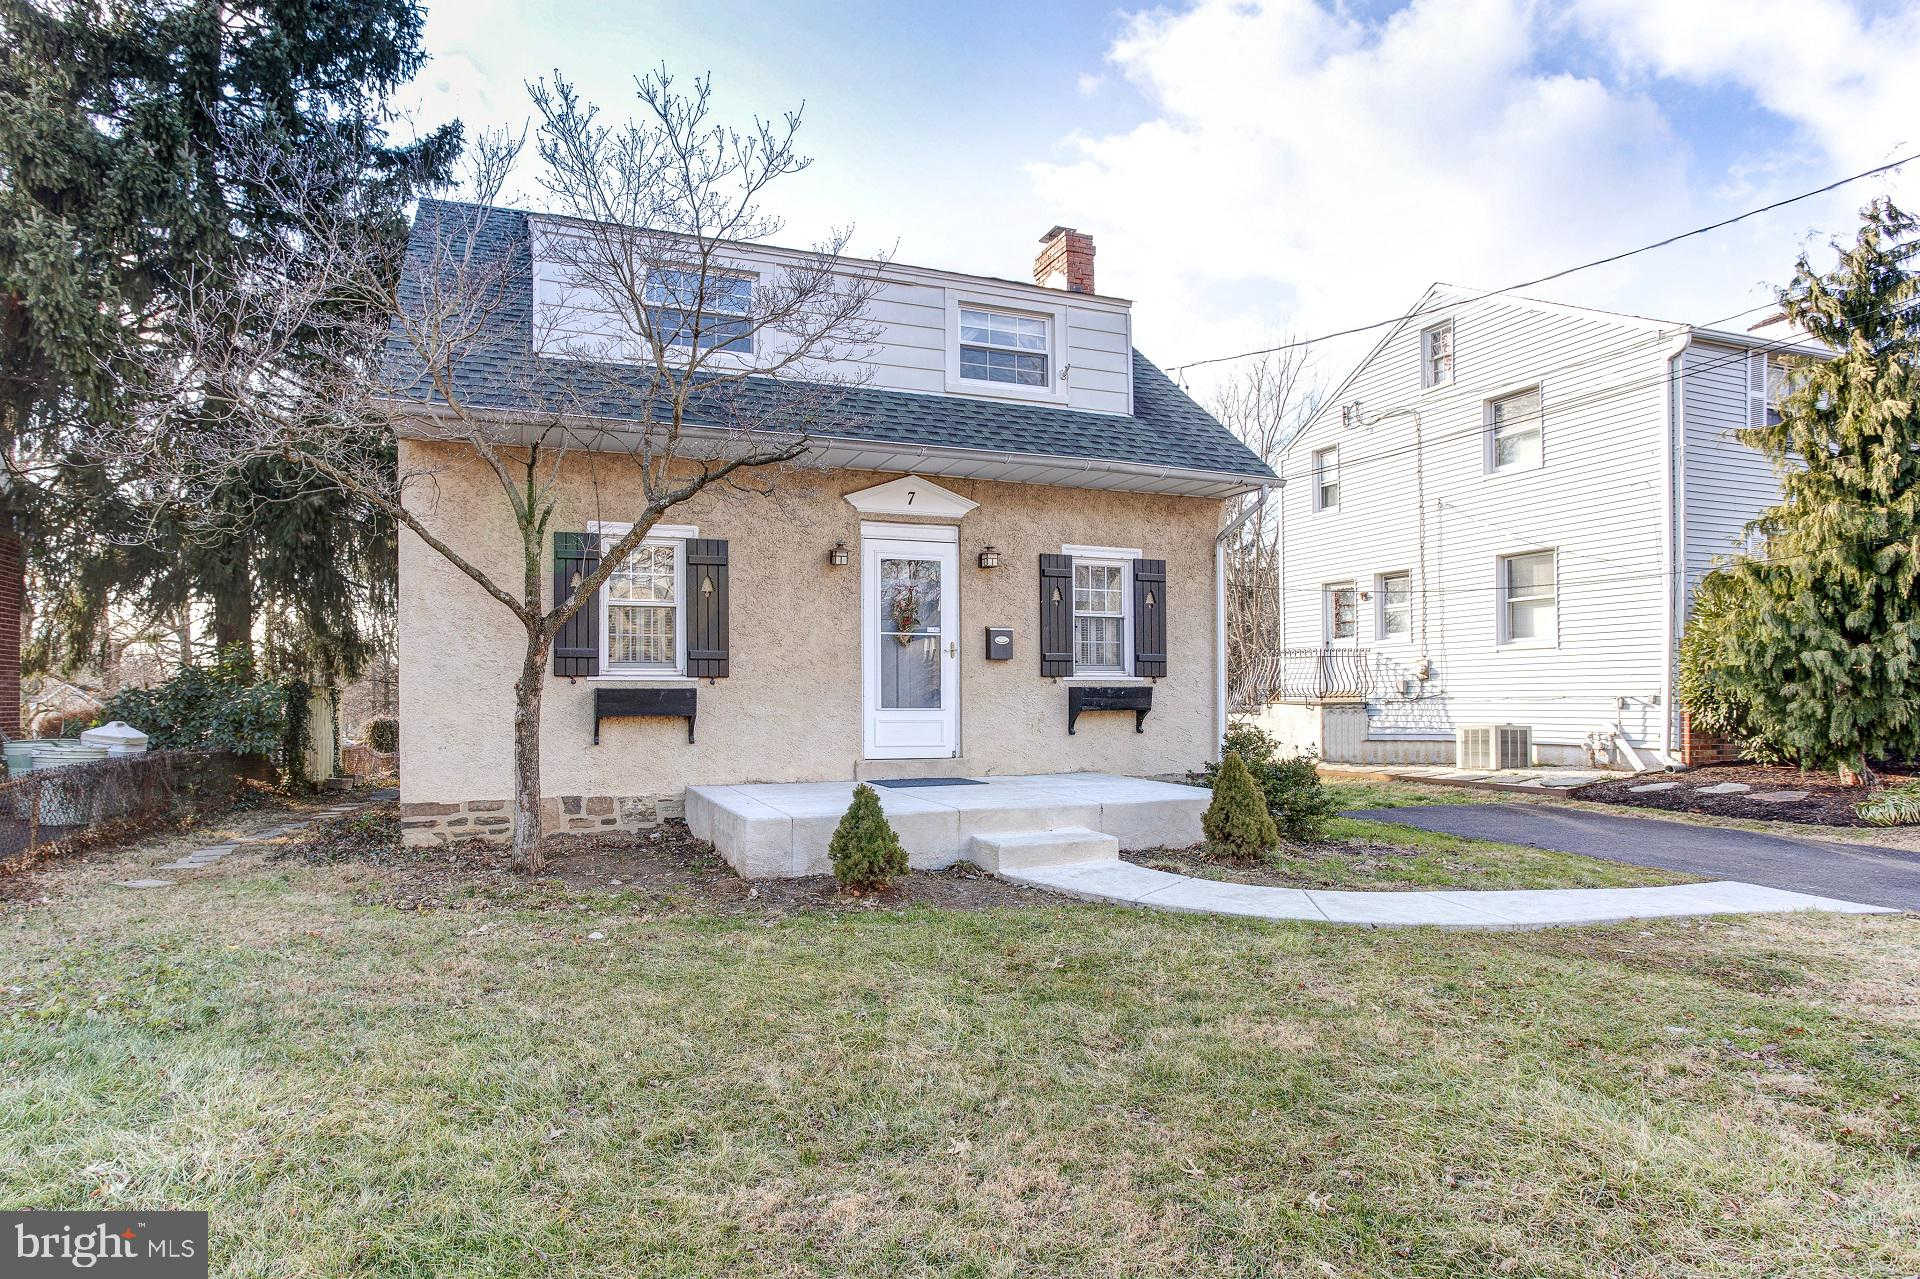 7 Highland Avenue, Flourtown, PA 19031 has an Open House on  Sunday, January 12, 2020 2:00 PM to 4:00 PM